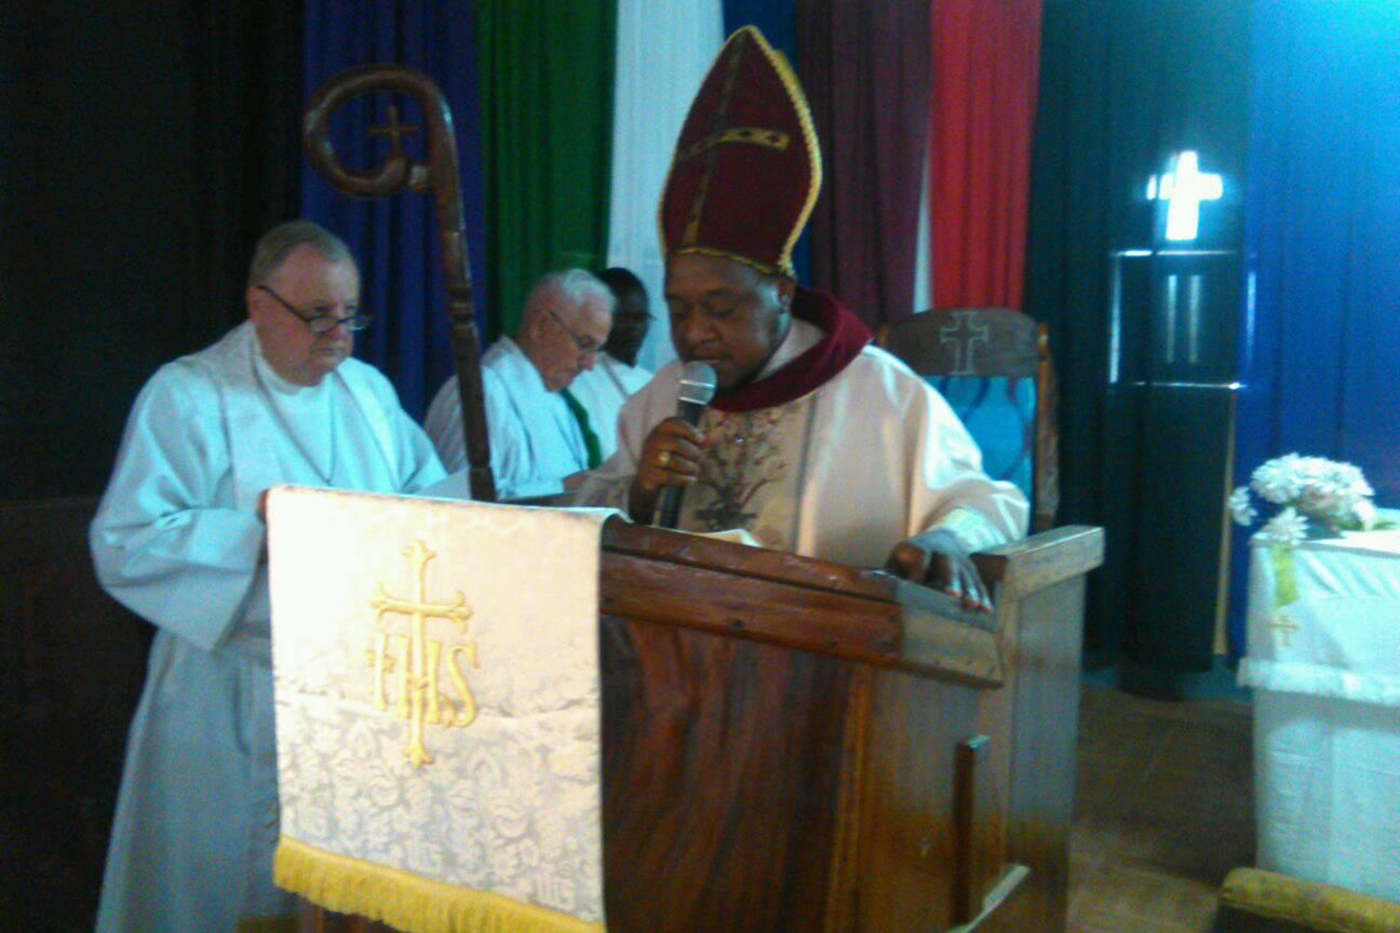 ELCSS/S Bishop Rev. Peter Anibati Abia leads opening services for CLIHM seminary in South Sudan.